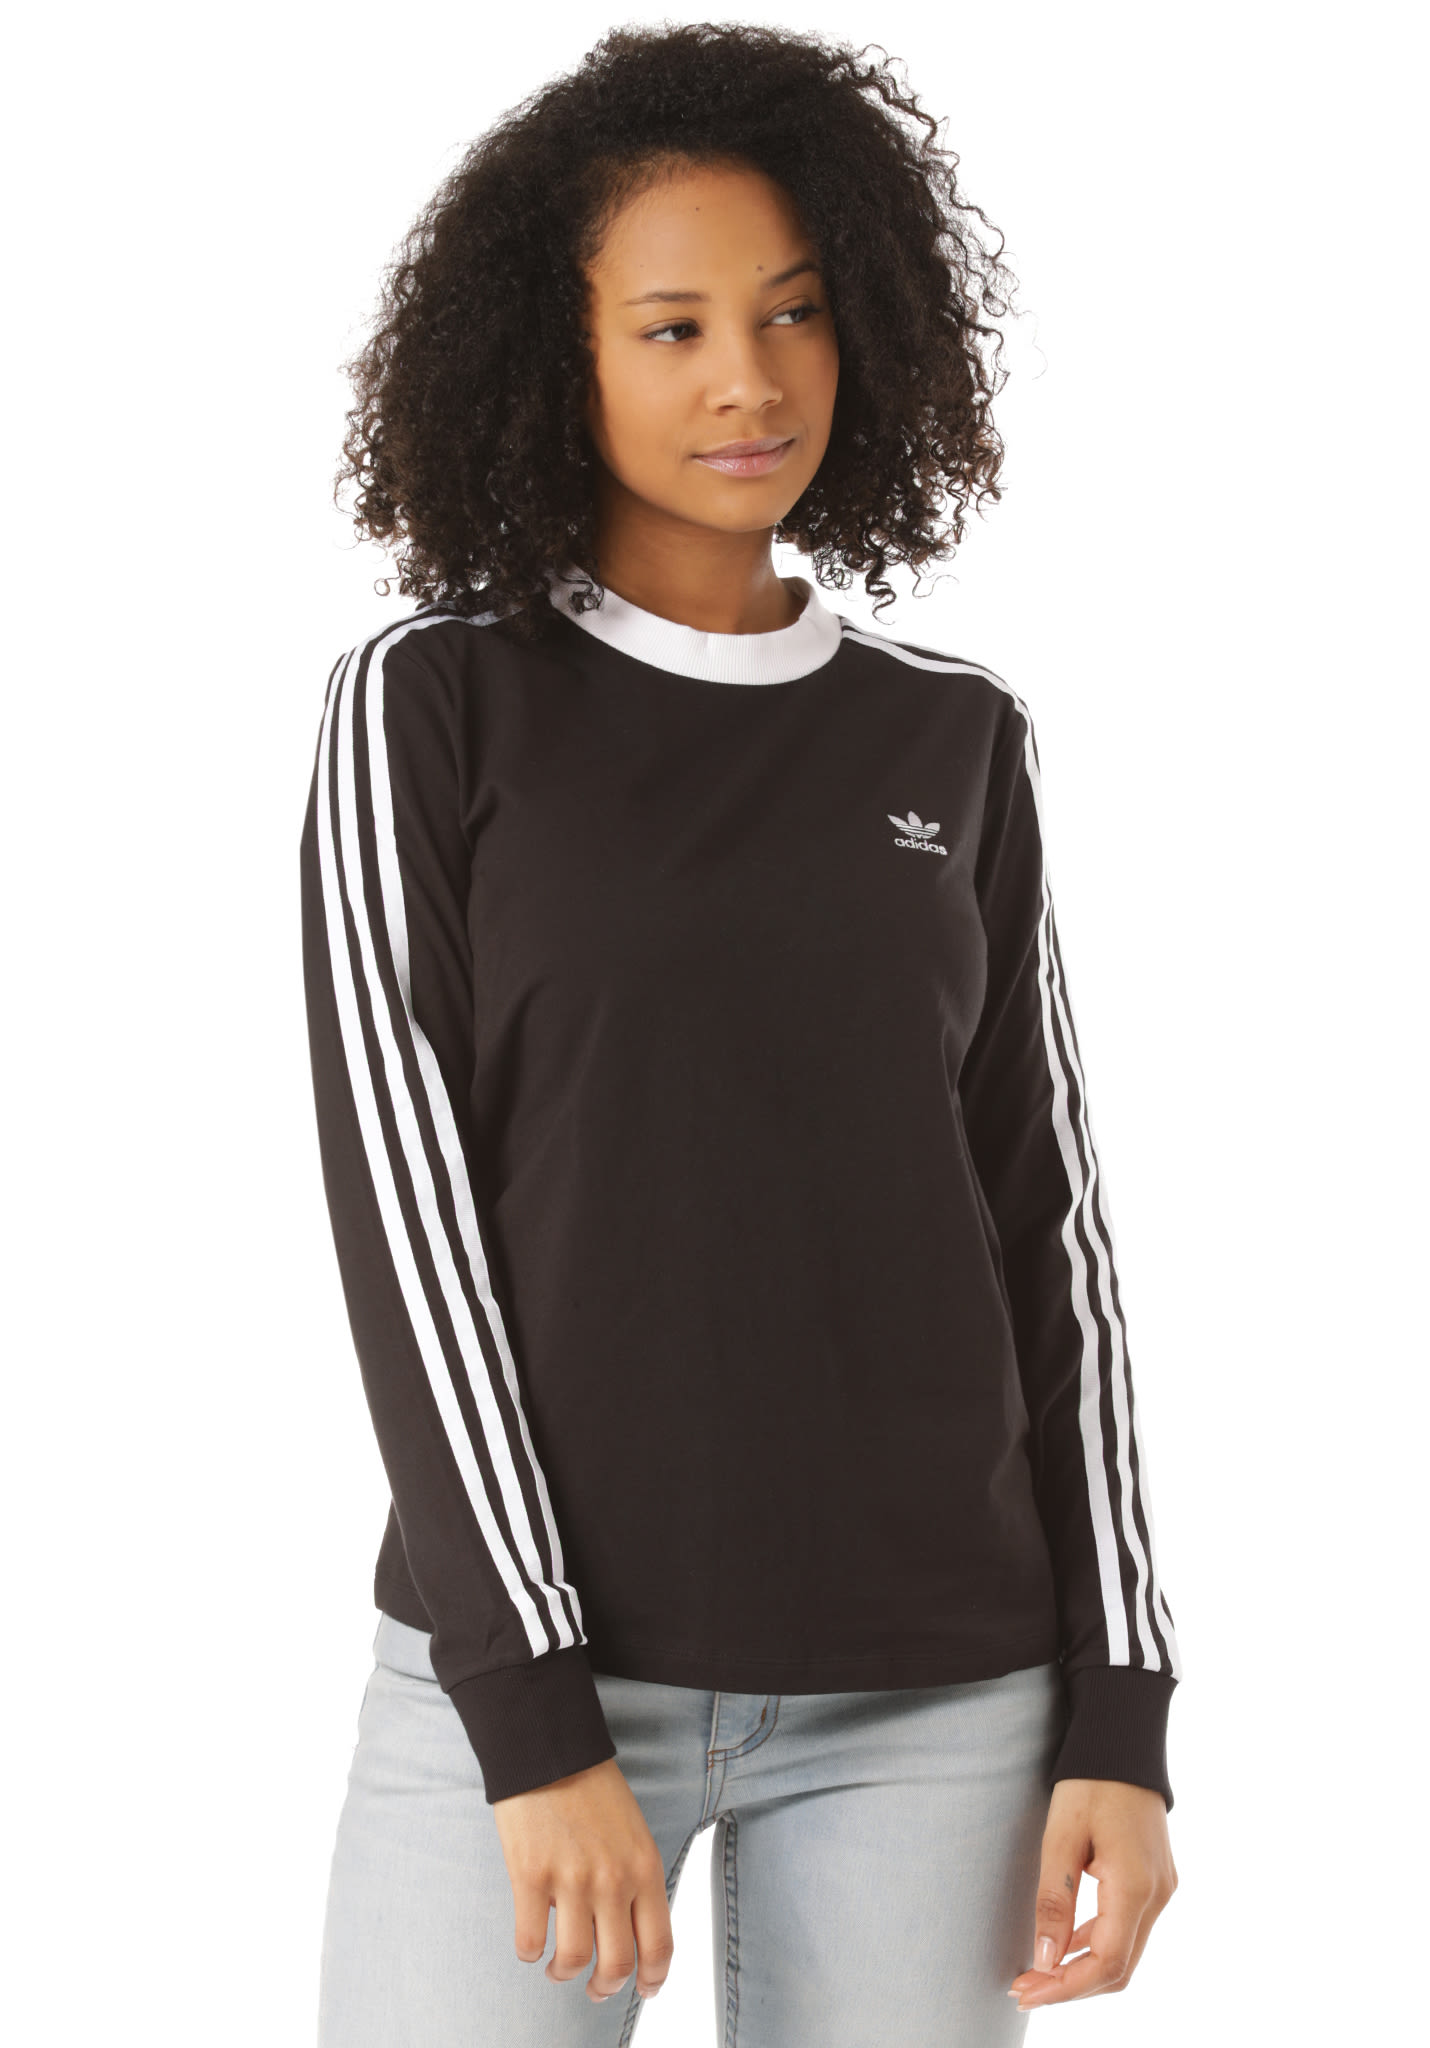 adidas Originals 3 Stripes Langarmshirt für Damen Schwarz